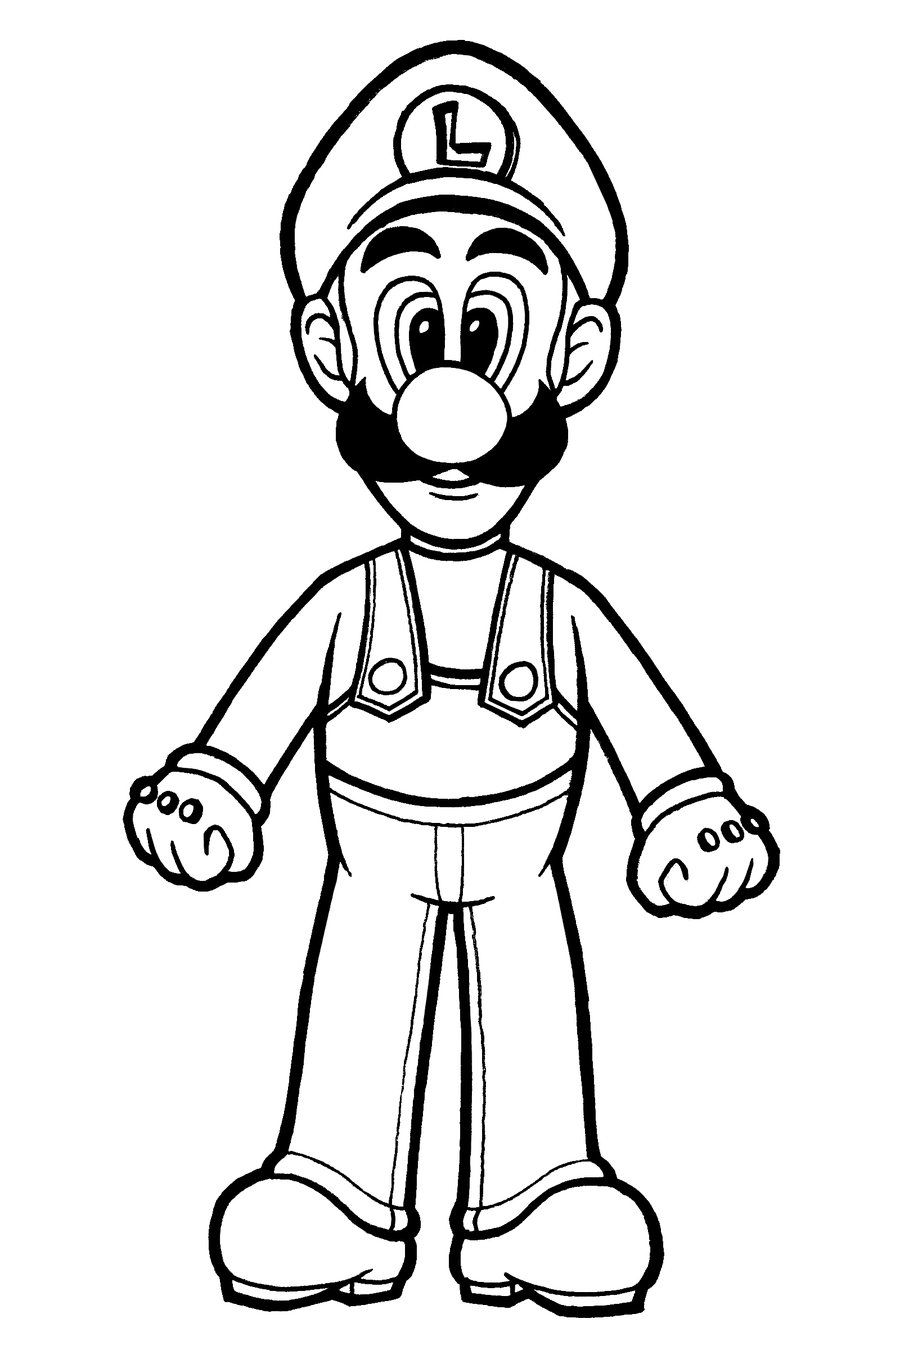 Mario and luigi coloring pages printable - Printable Luigi Coloring Pages Free Large Images